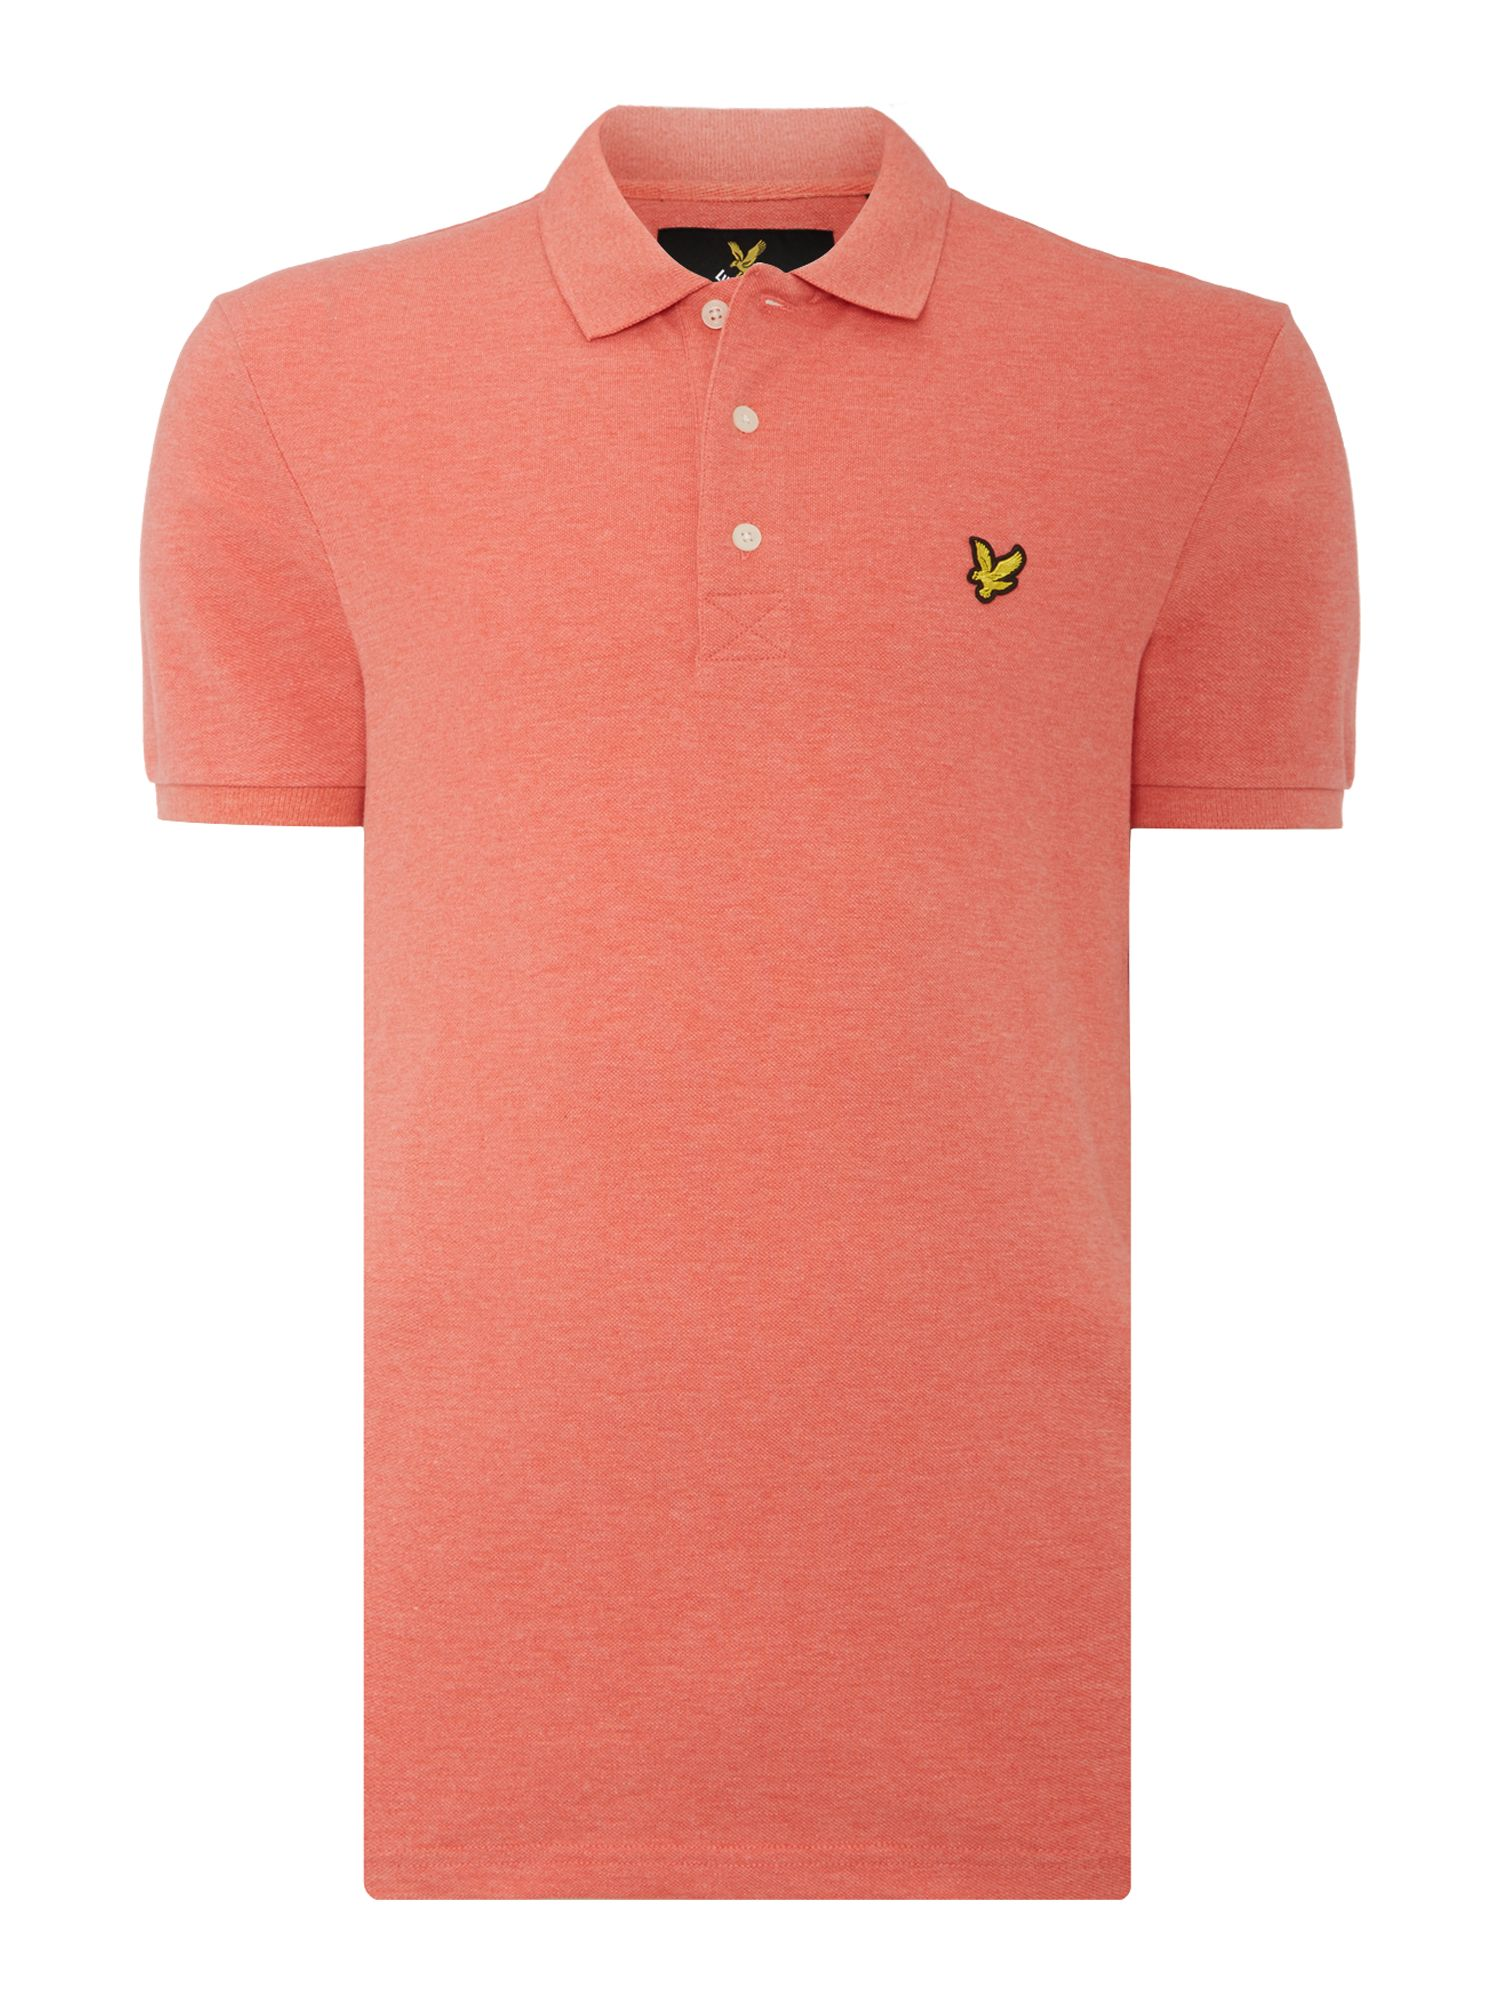 Men's Lyle and Scott Short Sleeve Classic Polo, Terracotta